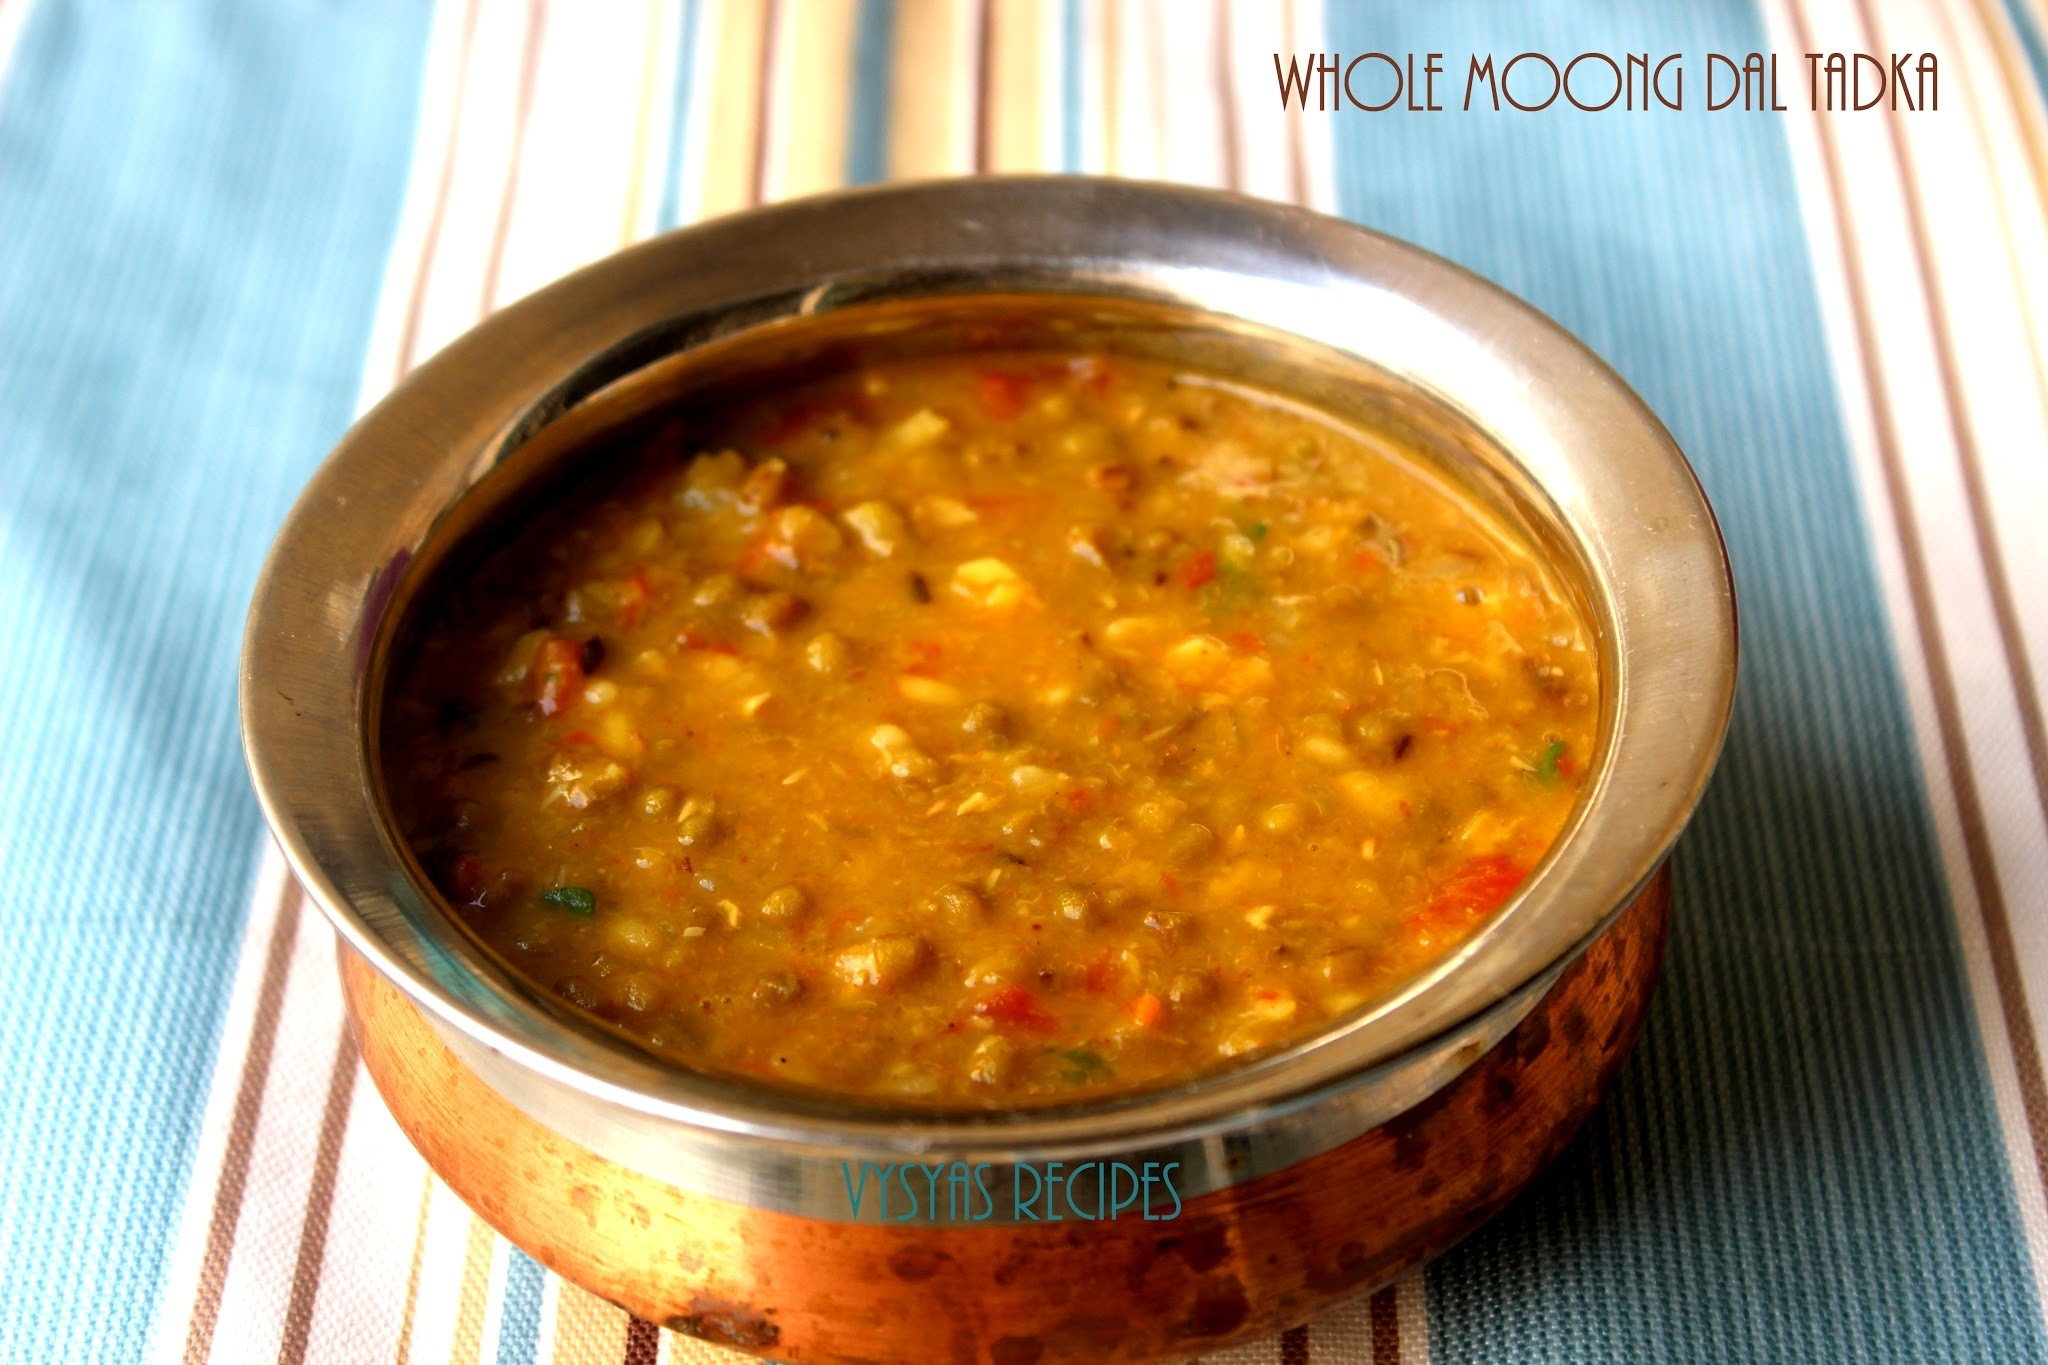 Dhaba Style Green Moong Dal Tadka - Green Moongdal Tadka Recipe